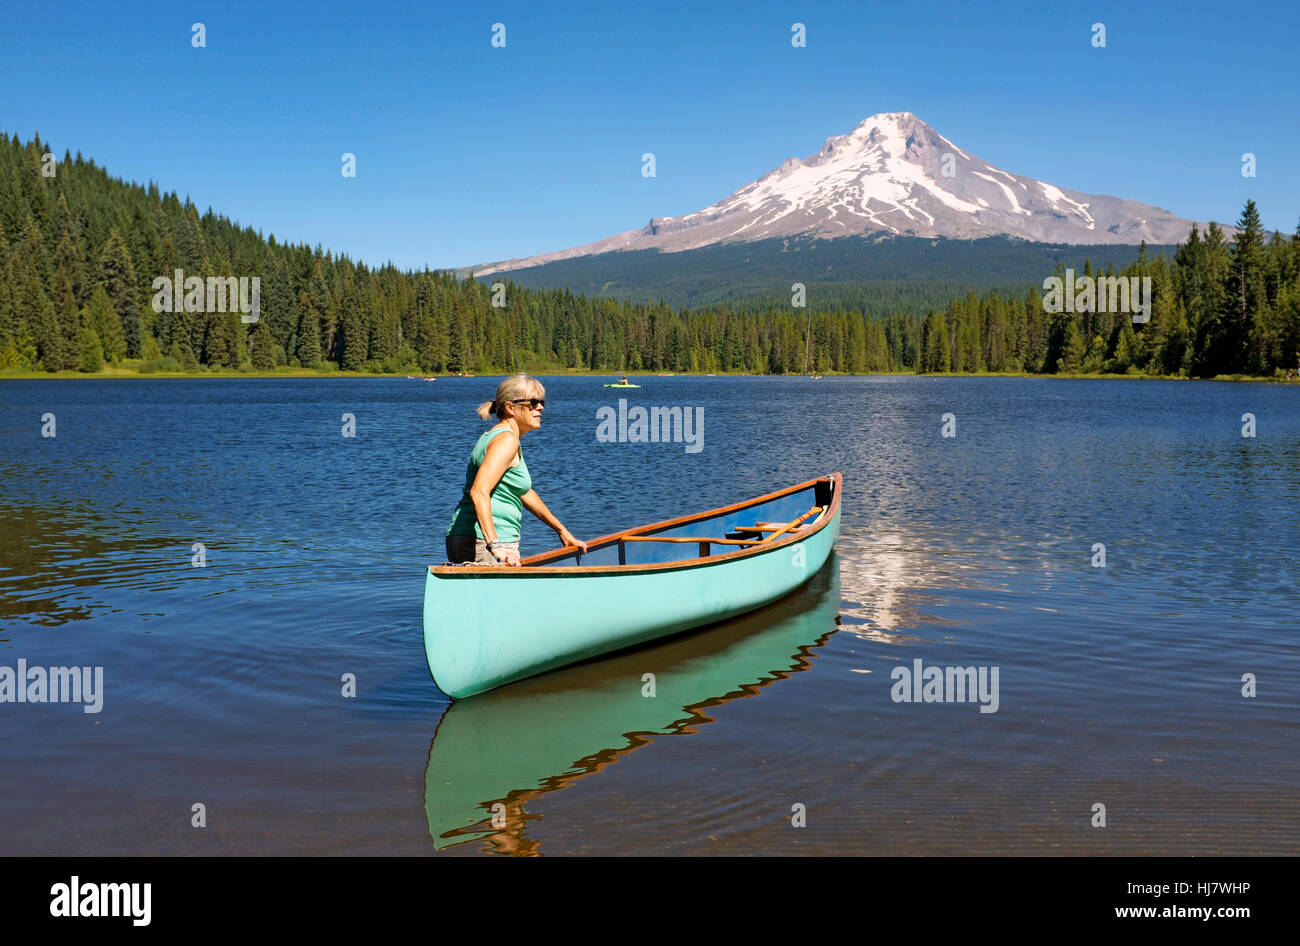 A middle-aged woman with a canoe on Trillium Lake near Mount Hood, in the Mount Hood National Forest, Oregon, in - Stock Image